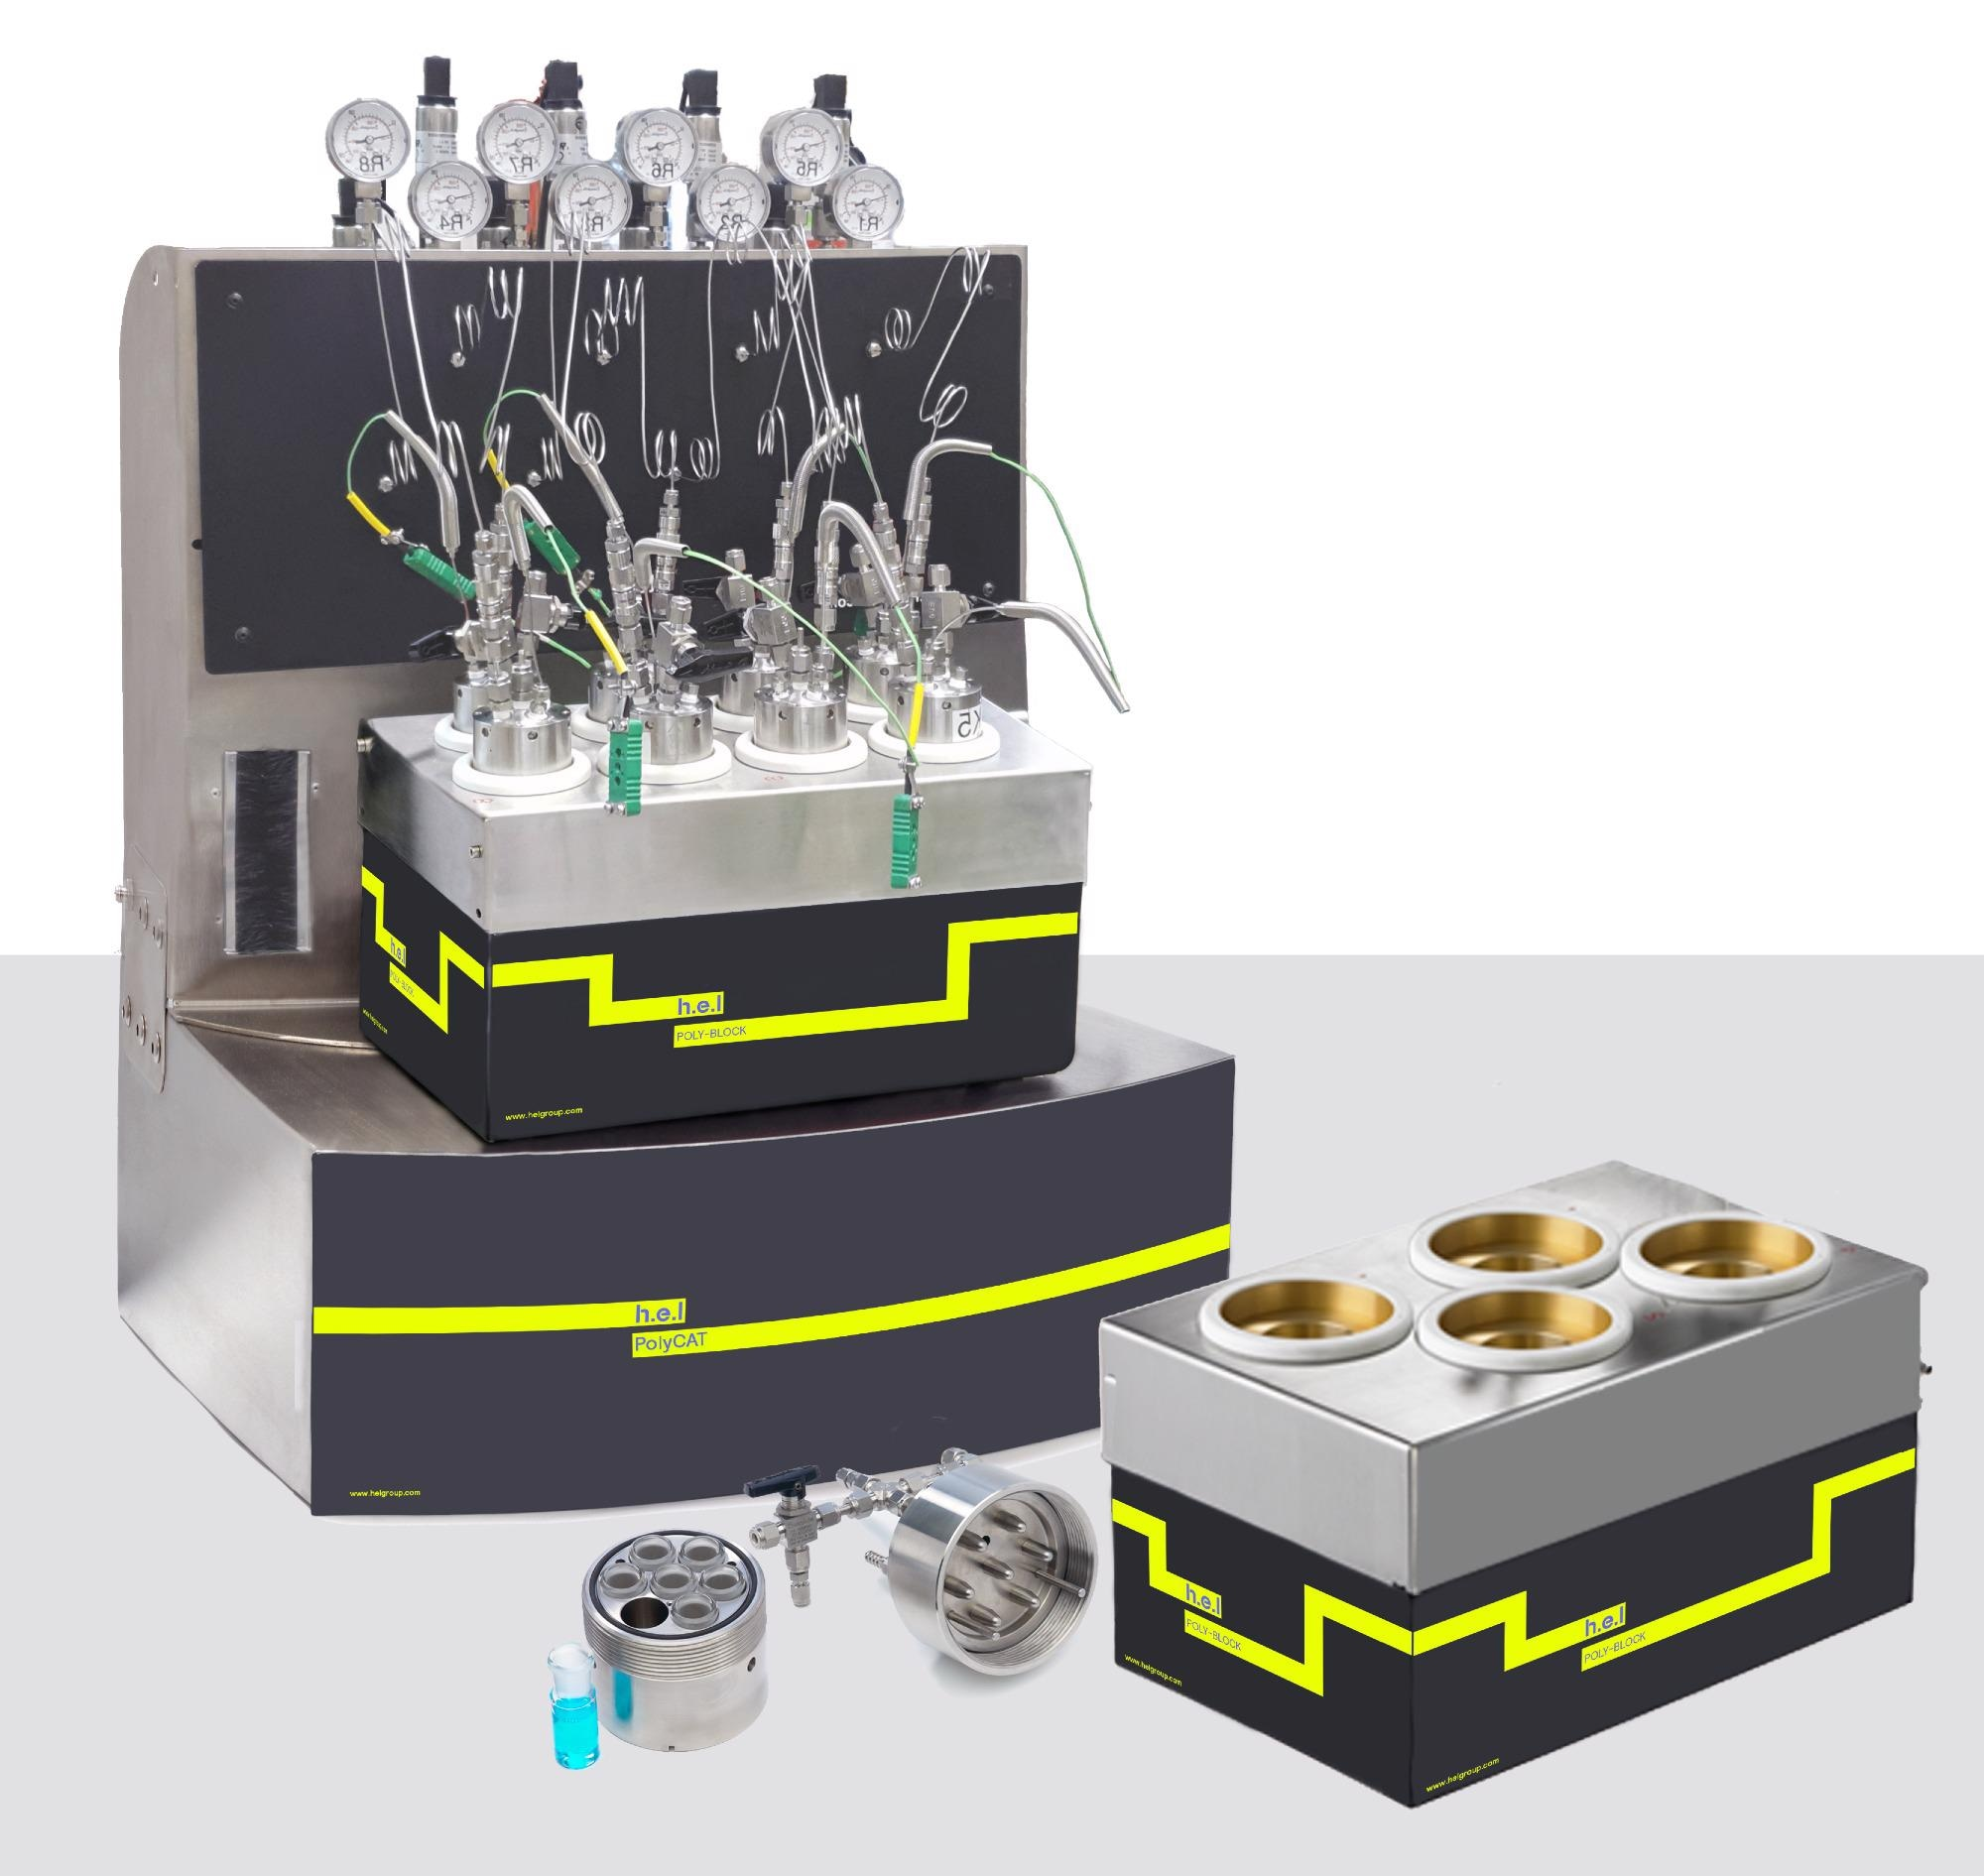 PolyCAT 4: Bench-top, 4-reactor, automated parallel catalyst screening platform